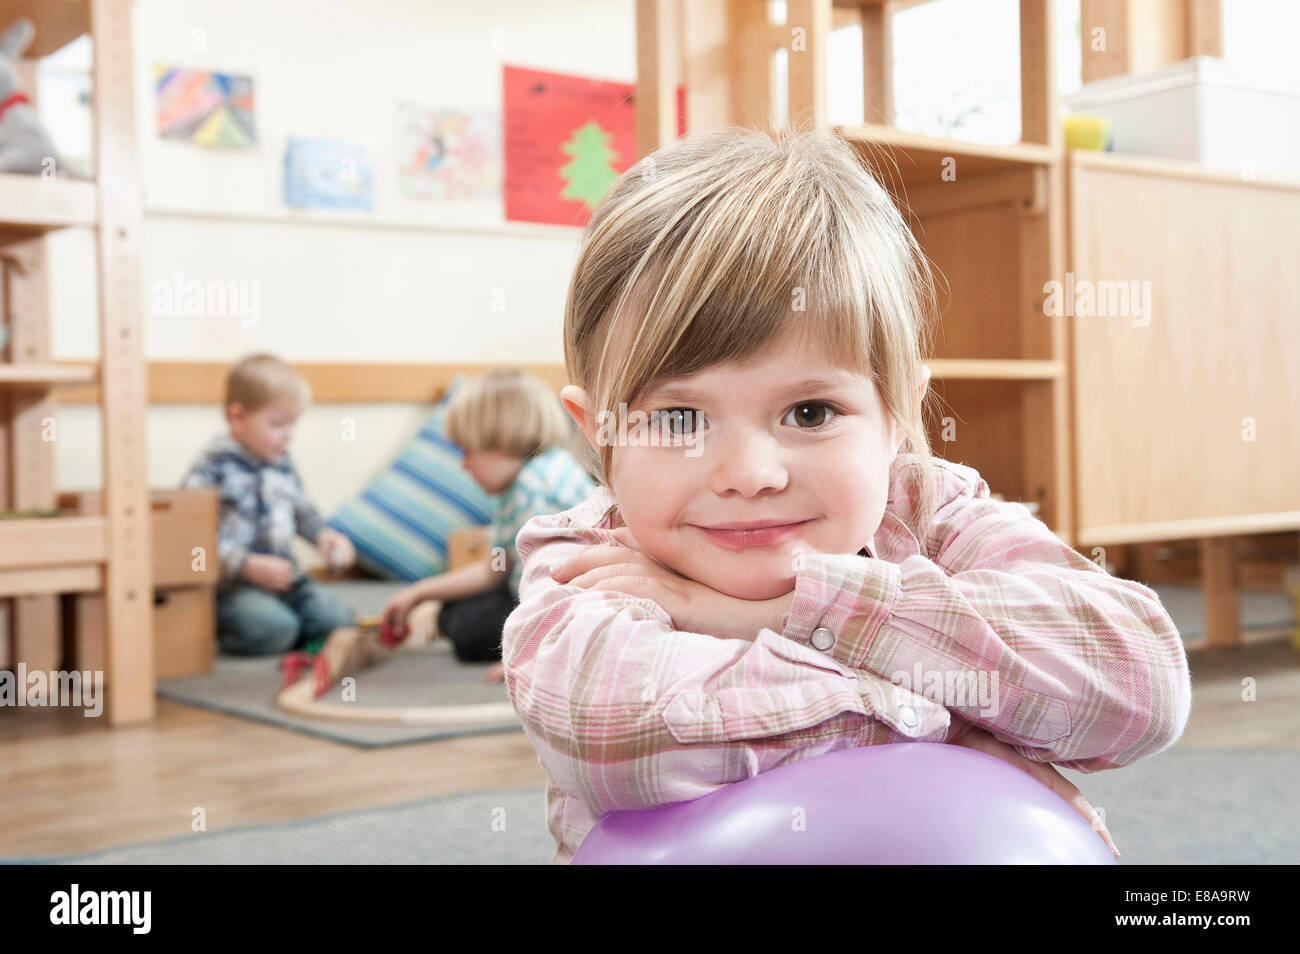 Portrait of smiling little girl with crossed arms - Stock Image